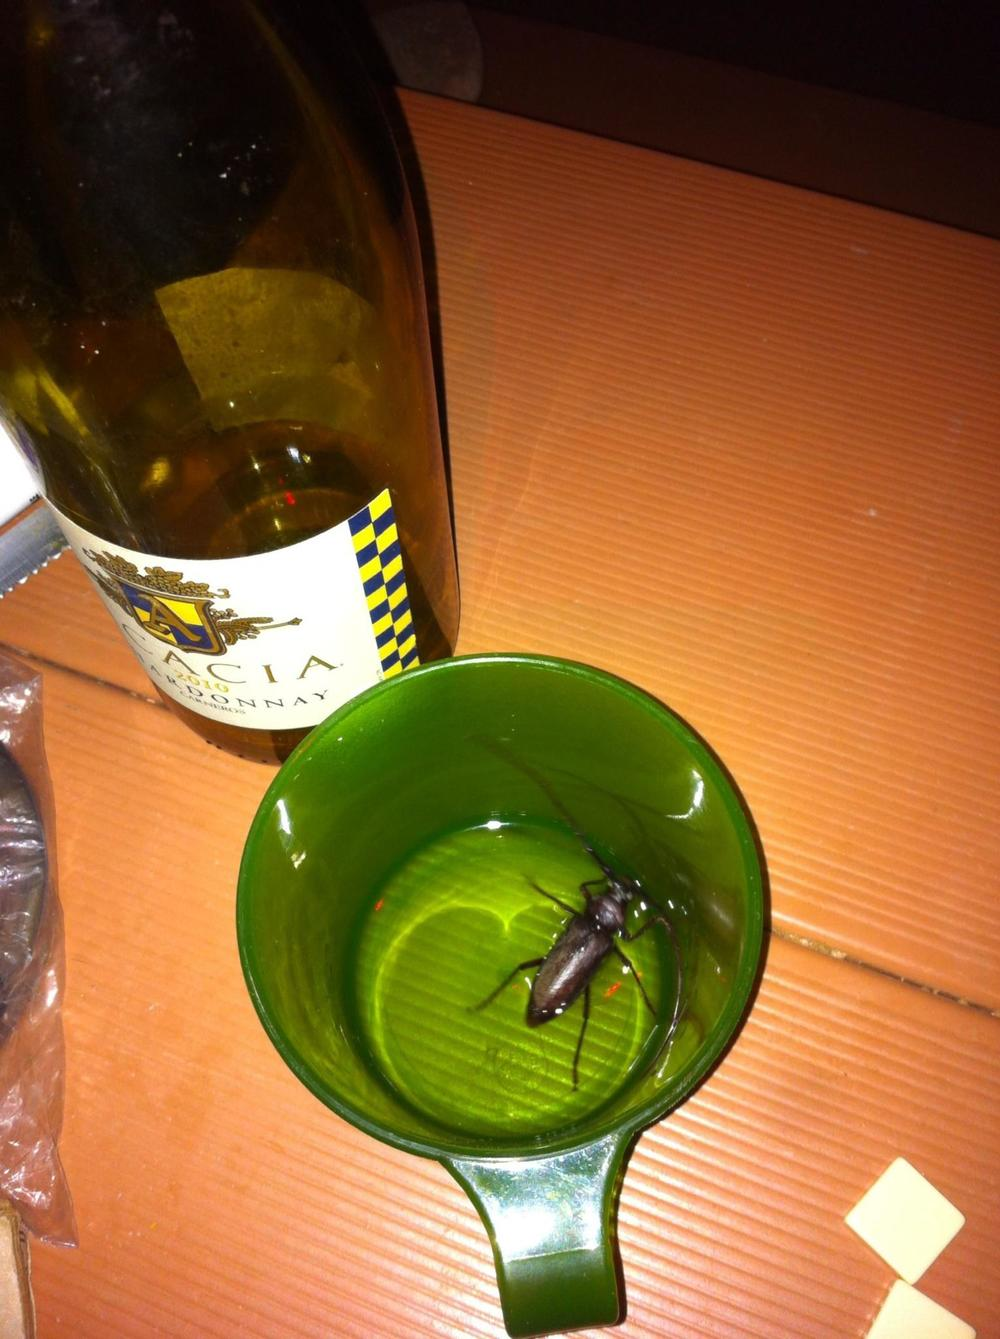 The ENORMOUS beetle that I almost drank